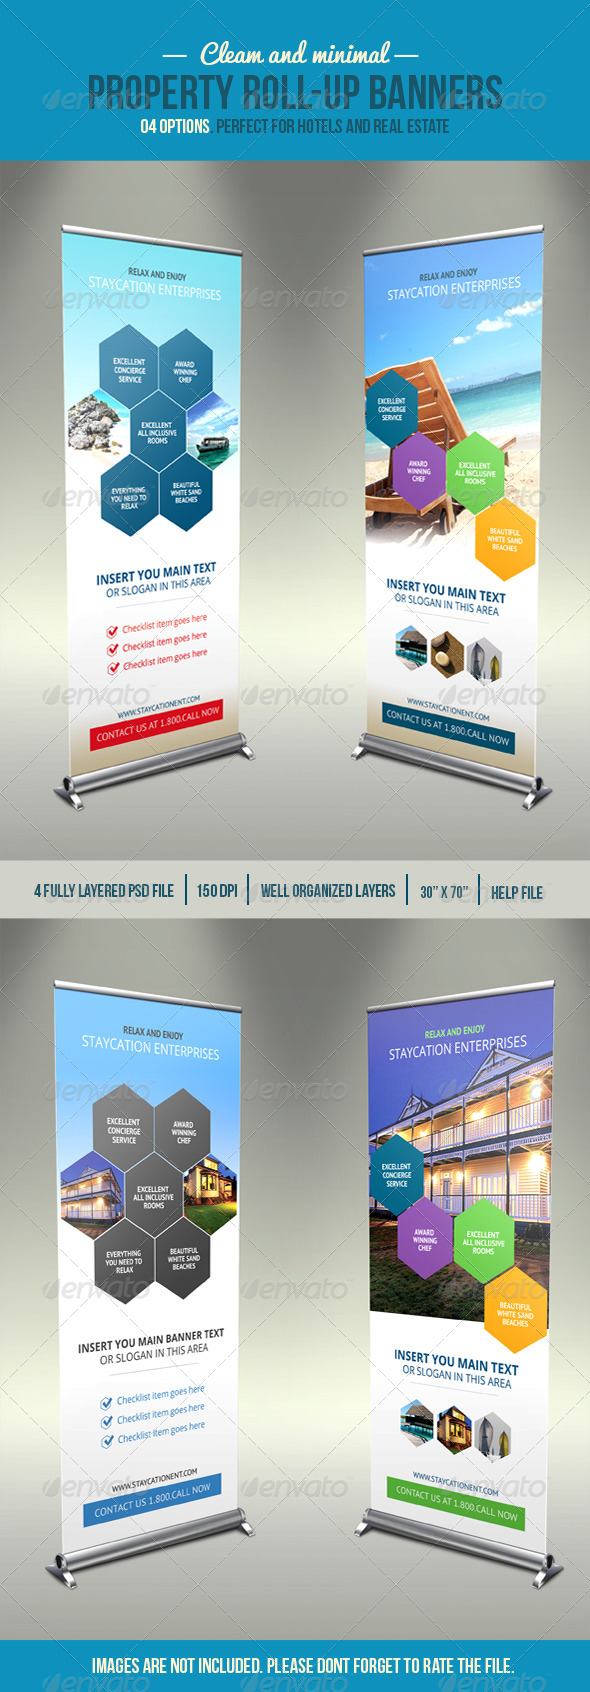 Hexa Property Roll-Up Banner - Signage Print Templates